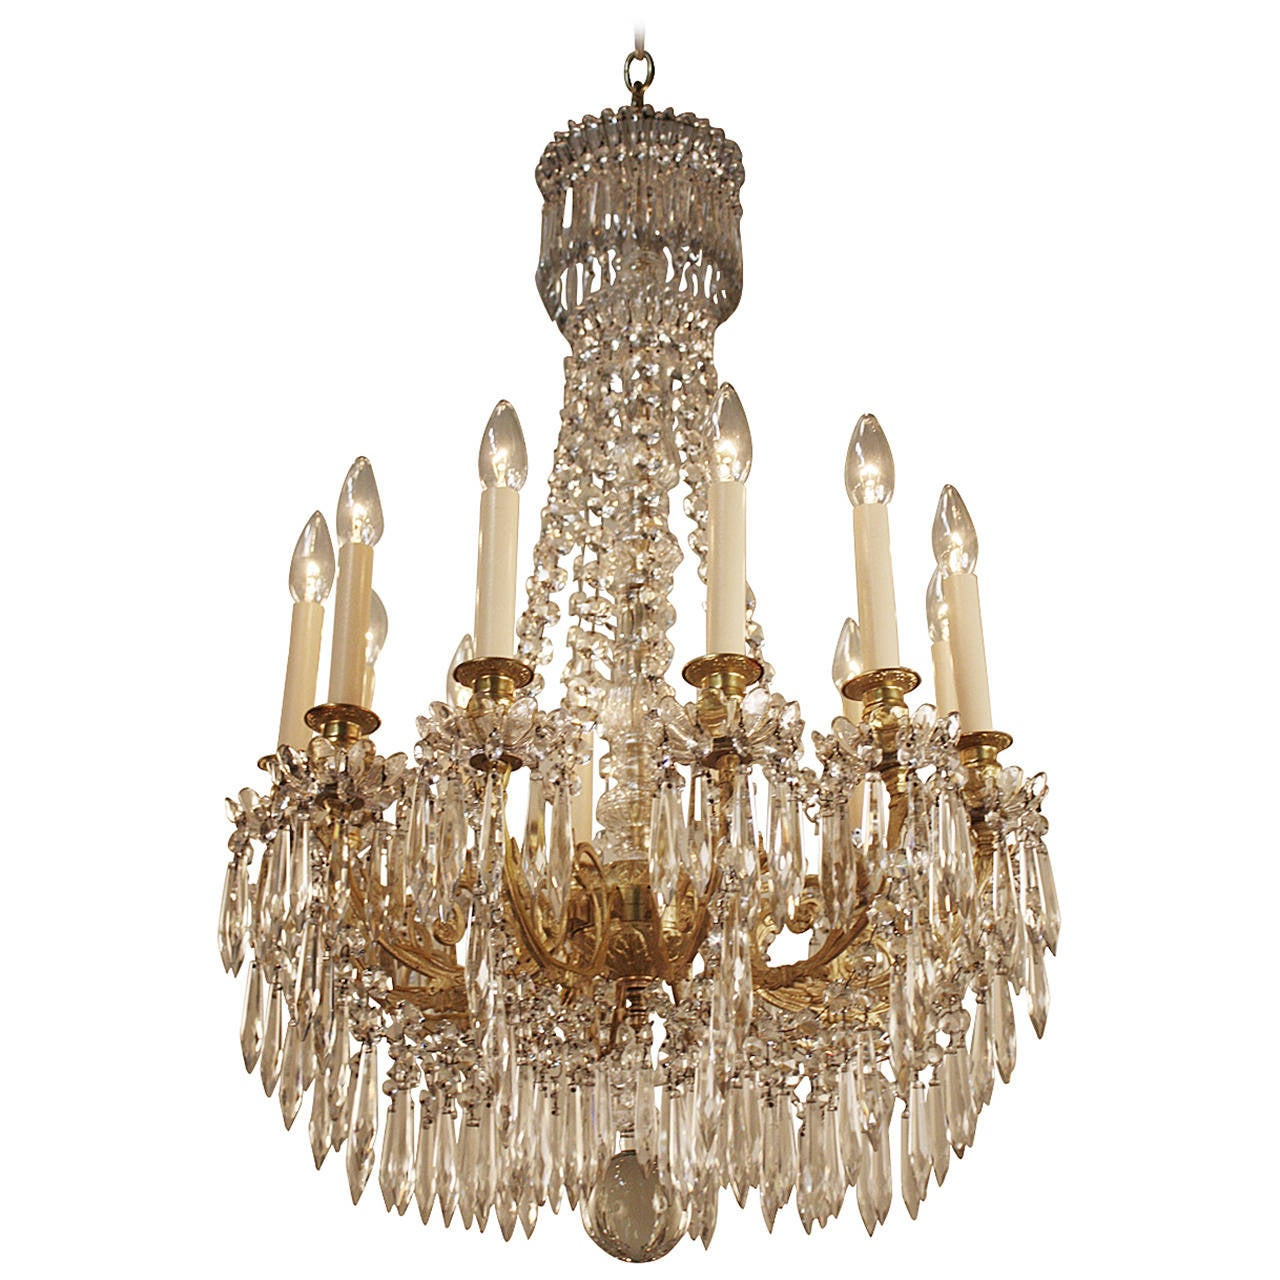 19th Century French Crystal Chandelier at 1stdibs